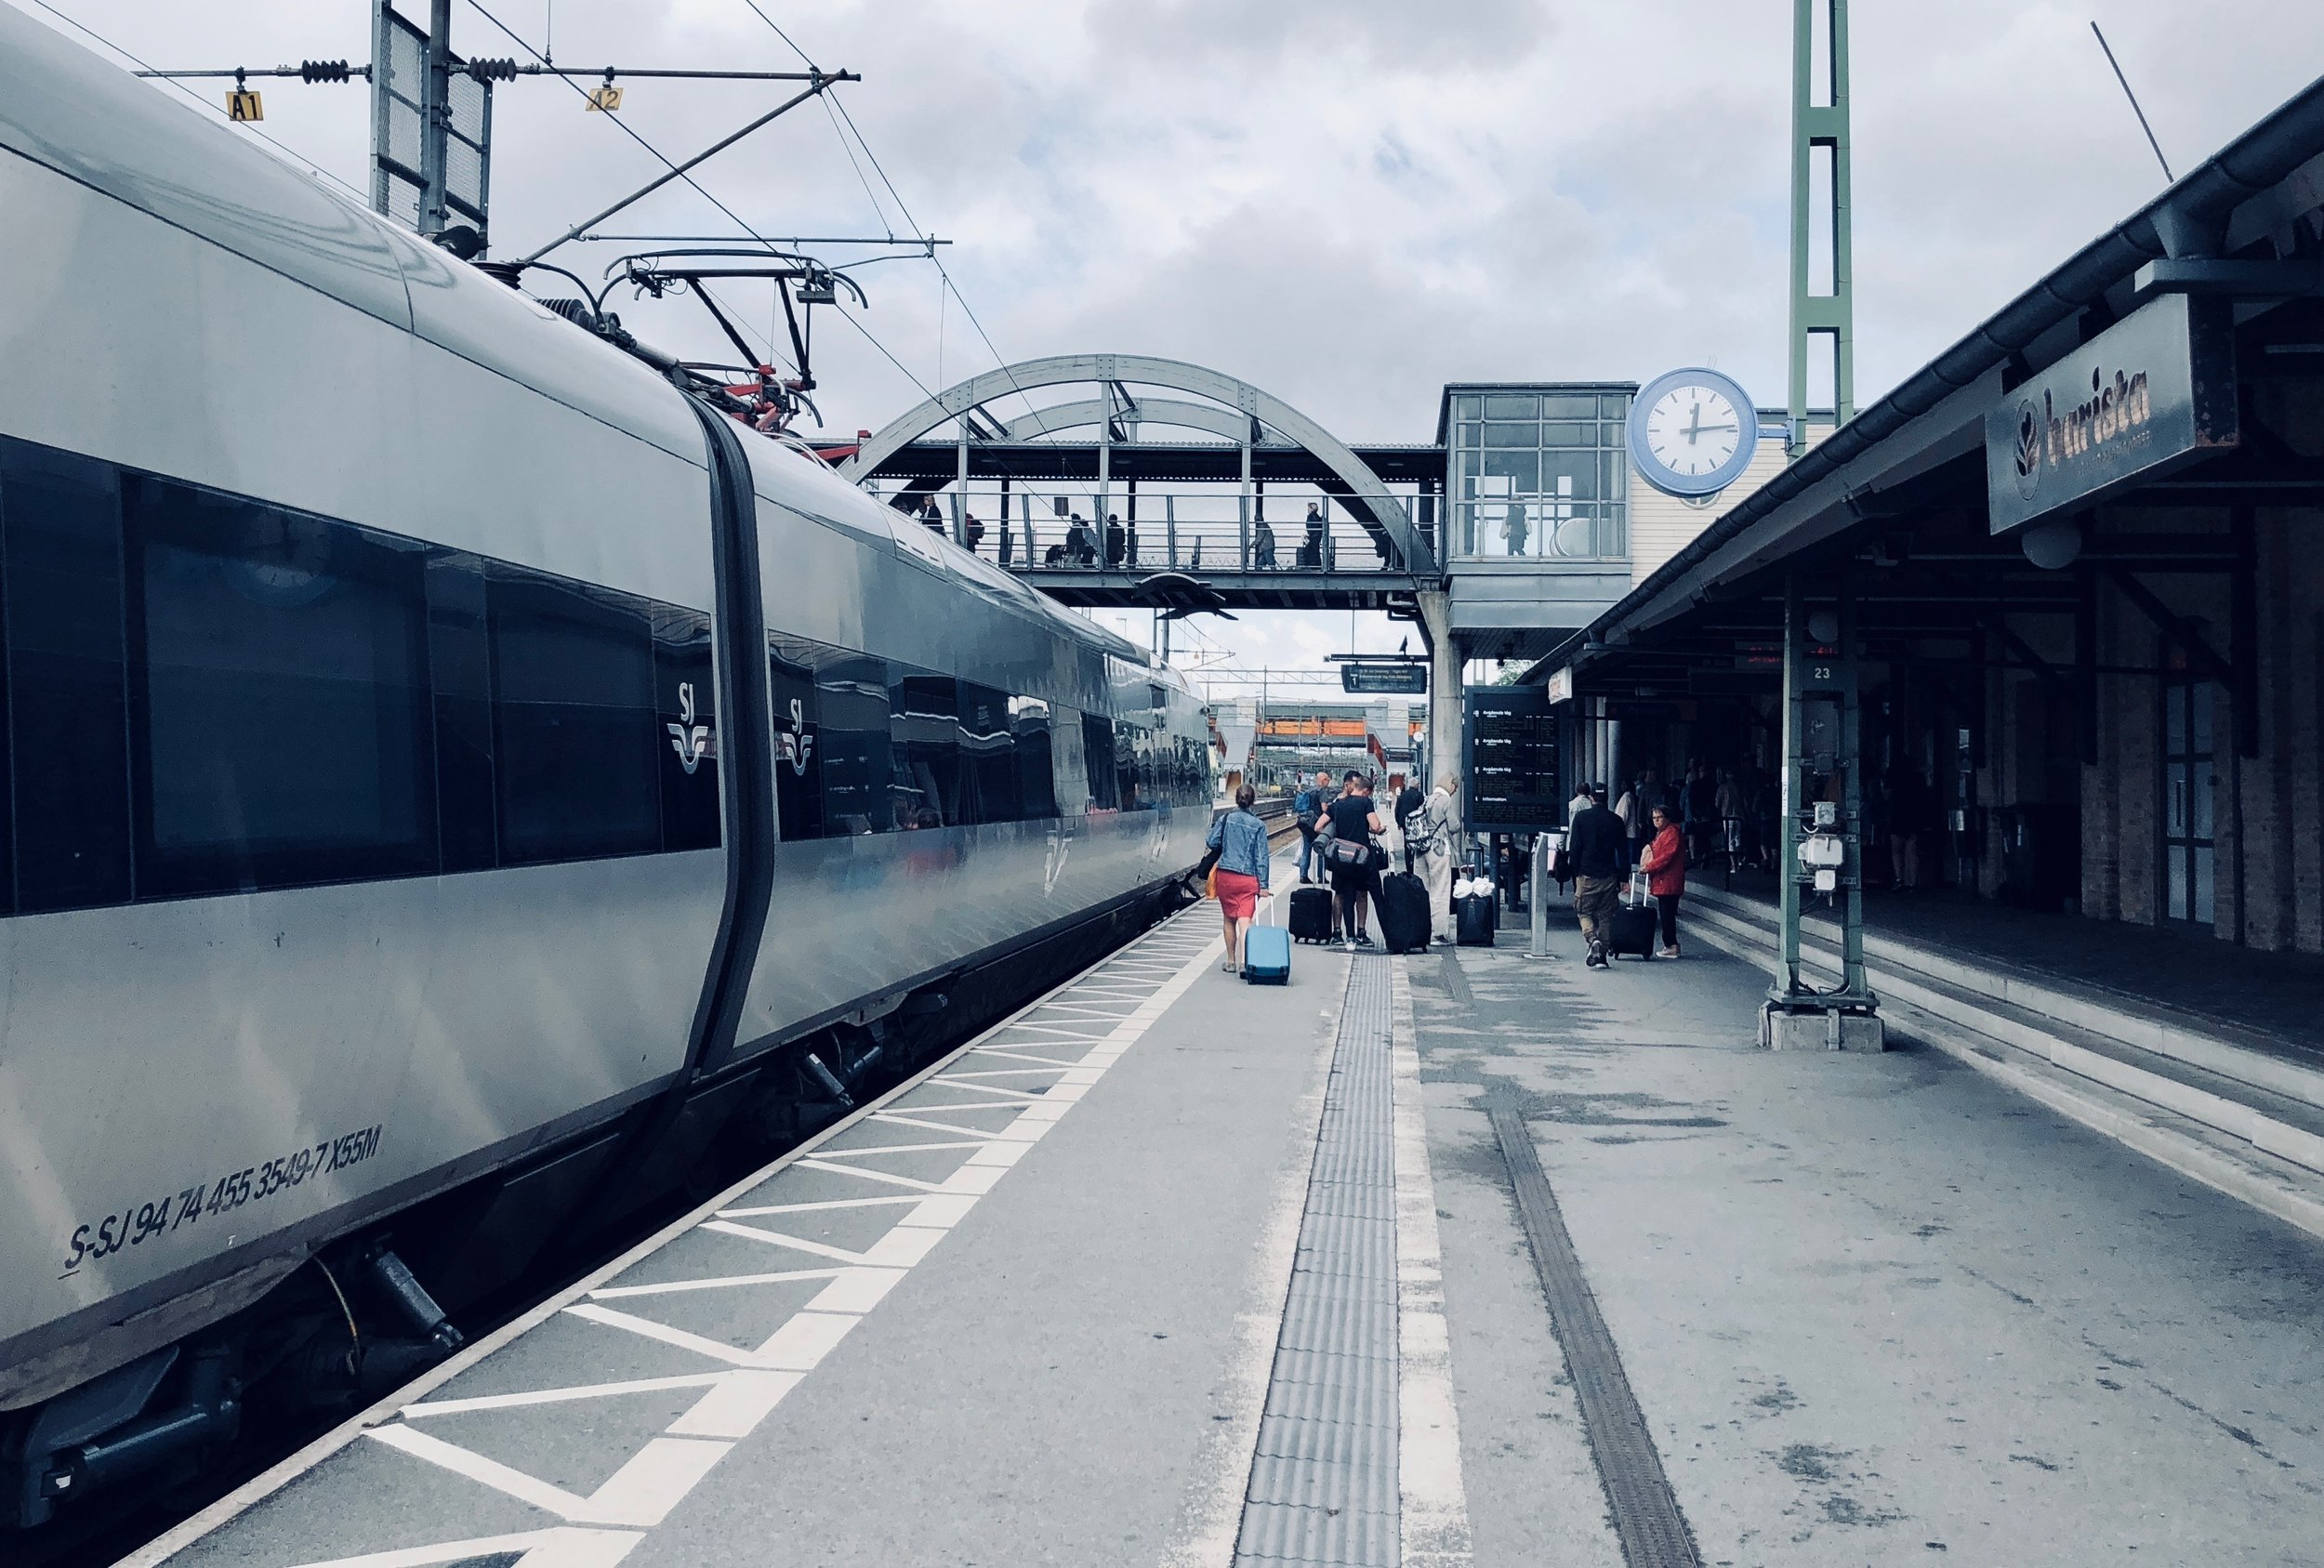 The high-speed train to Lund, Sweden.